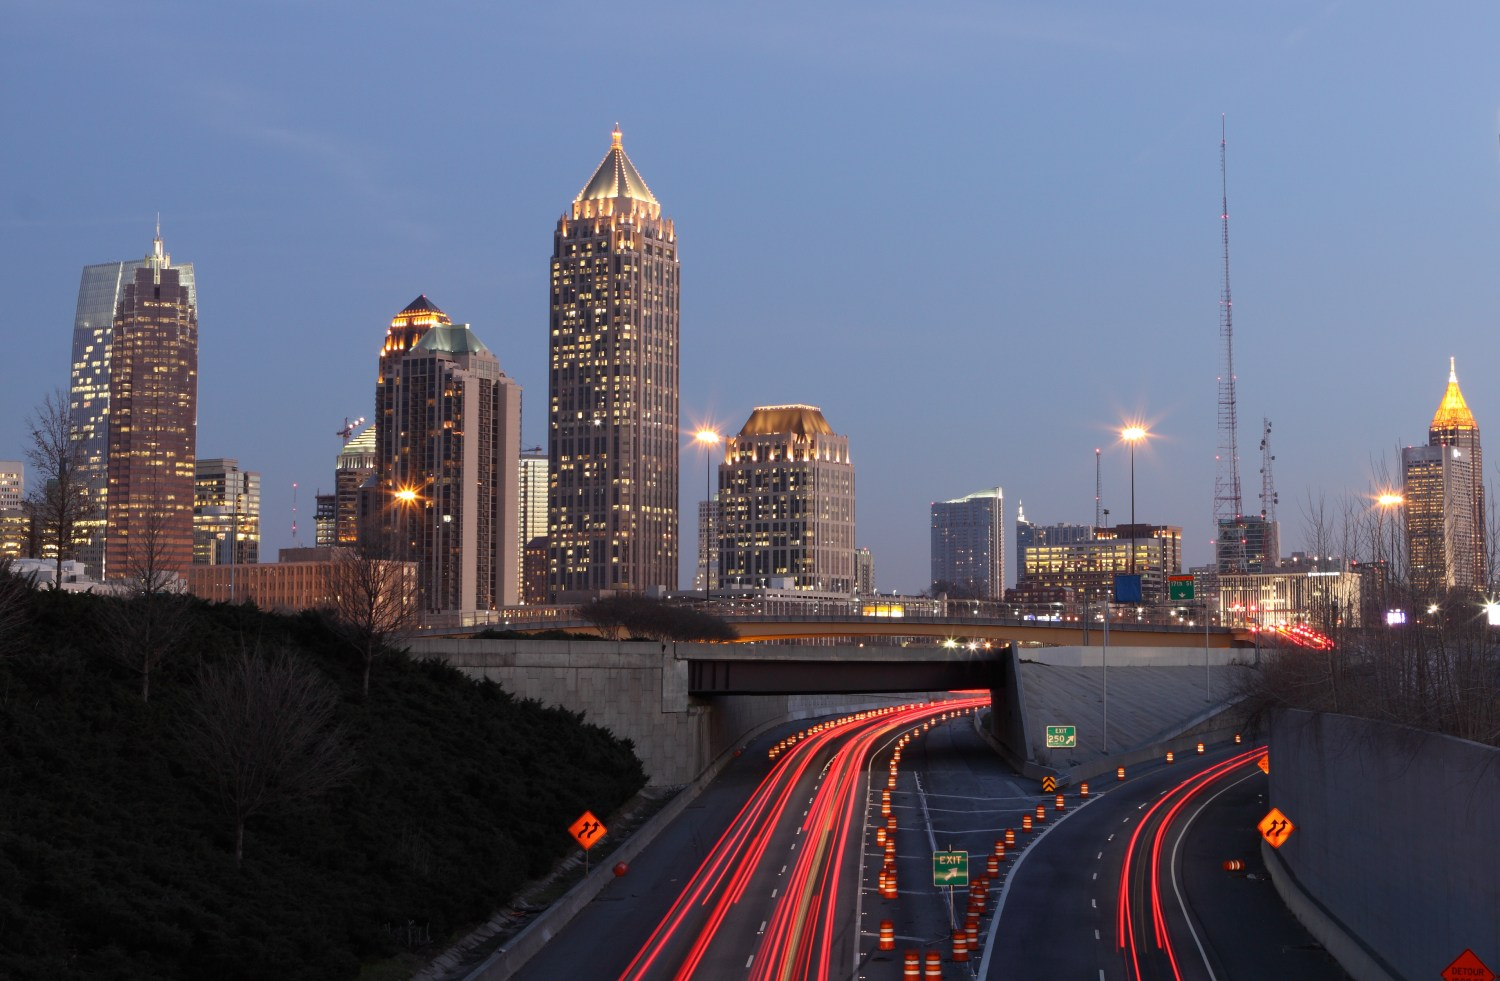 Atlanta's water use is a central question in a U.S. Supreme Court lawsuit over water supplies in Georgia and Florida. Photo courtesy of Wikimedia Commons